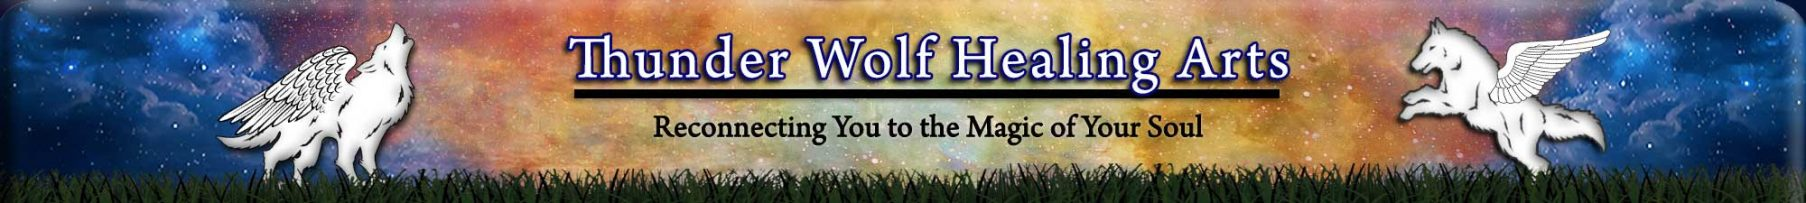 Thunder Wolf Healing Arts Header